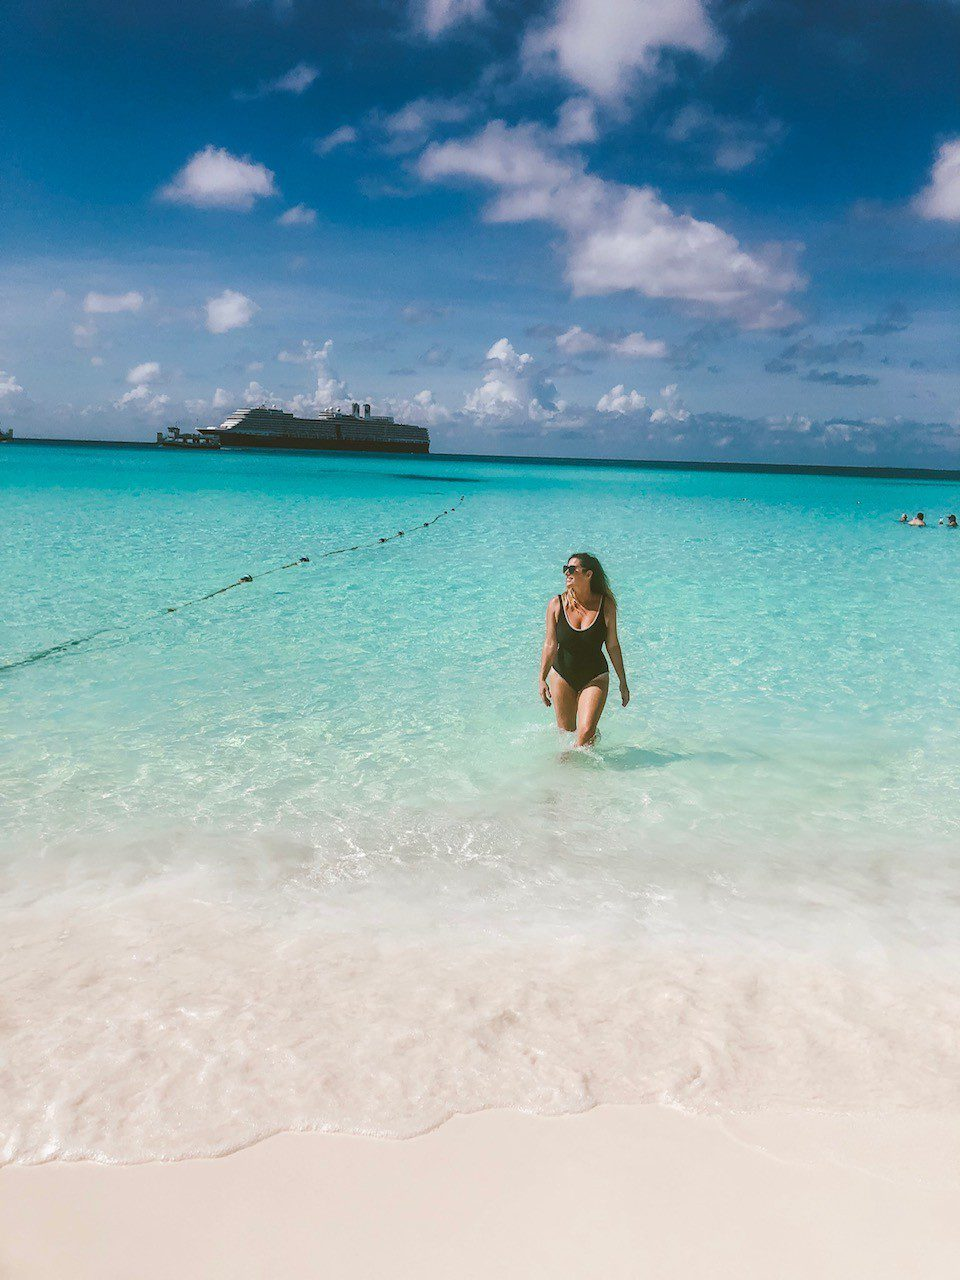 5 Amazing Reason to go on a Holland America cruise with Oprah Magazine by popular US lifestyle blog Fresh Mommy Blog: image of woman wearing a black one piece swimsuit and standing in the Caribbean ocean with a Holland America cruise ship on the horizon.